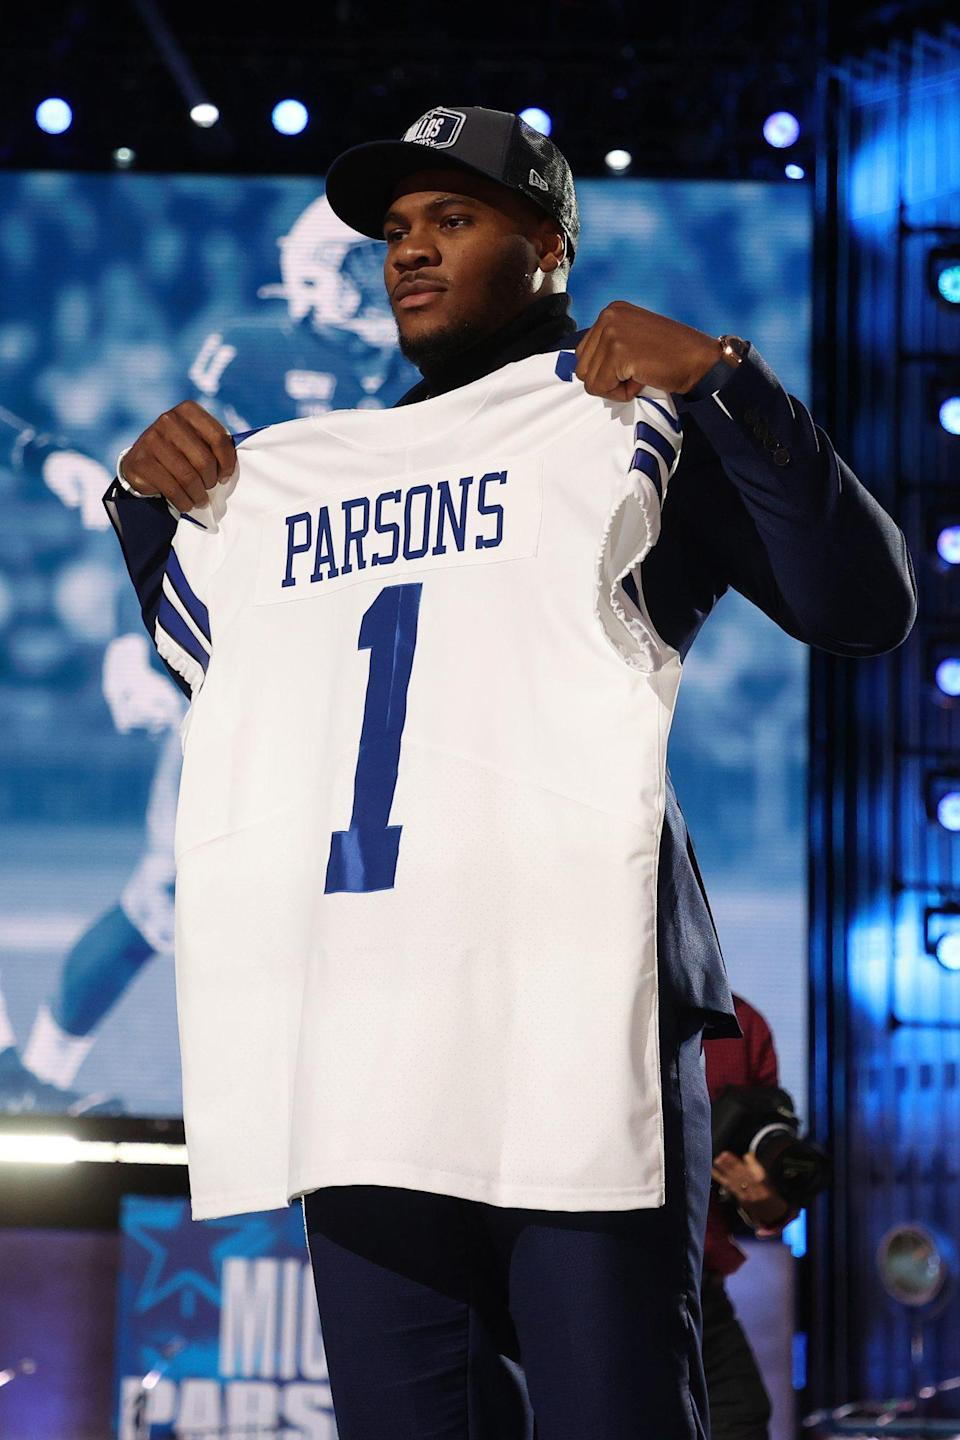 <p>From Penn State University to Dallas, Texas: Micah Parsons is now a Cowboy!</p>